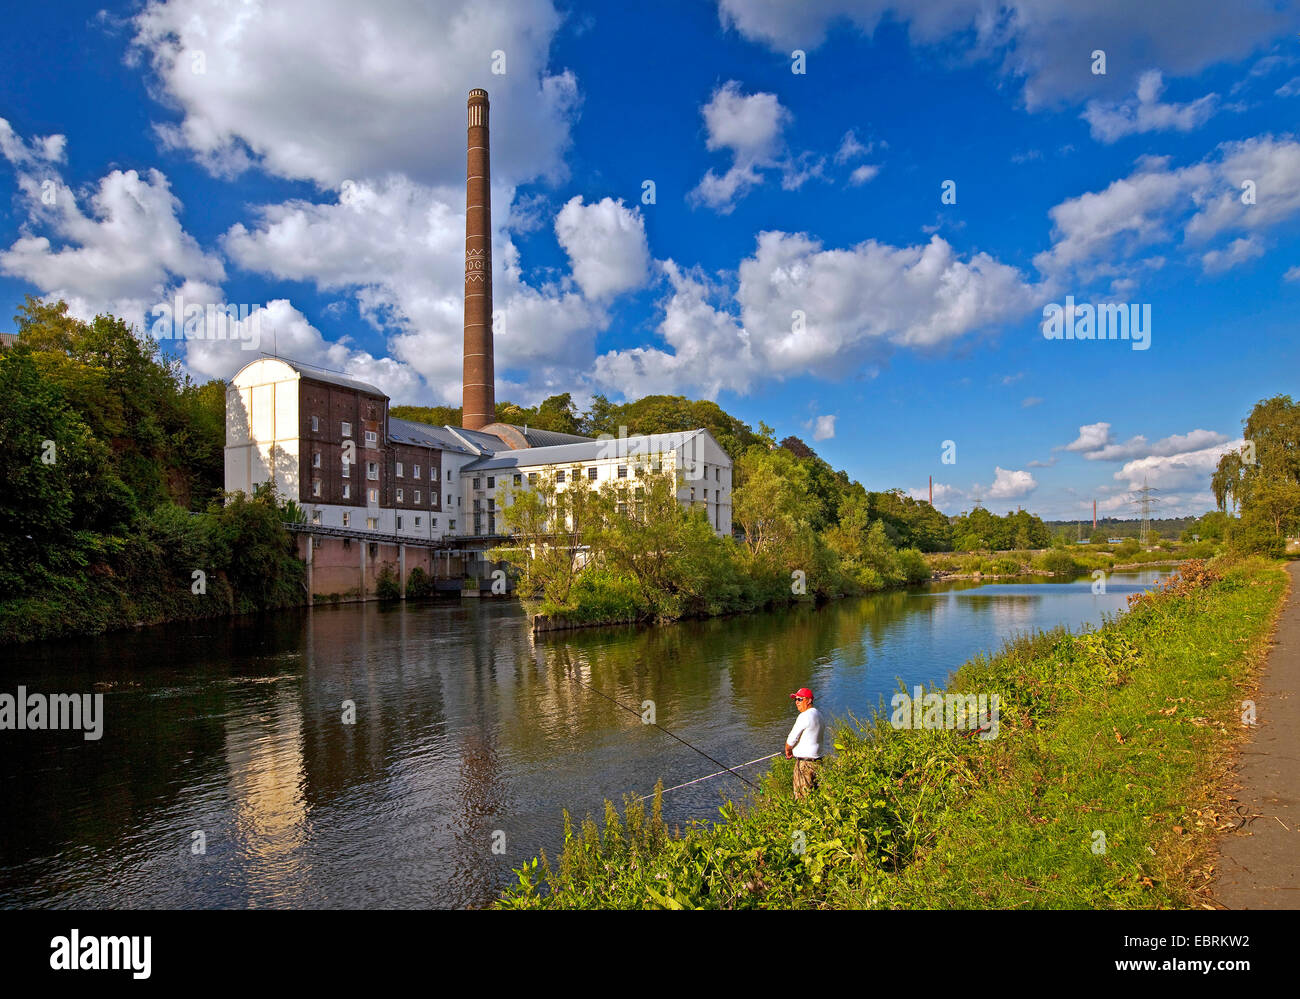 Horster Muehle hydroelectric power plant at Ruhr river, Germany, North Rhine-Westphalia, Ruhr Area, Essen - Stock Image